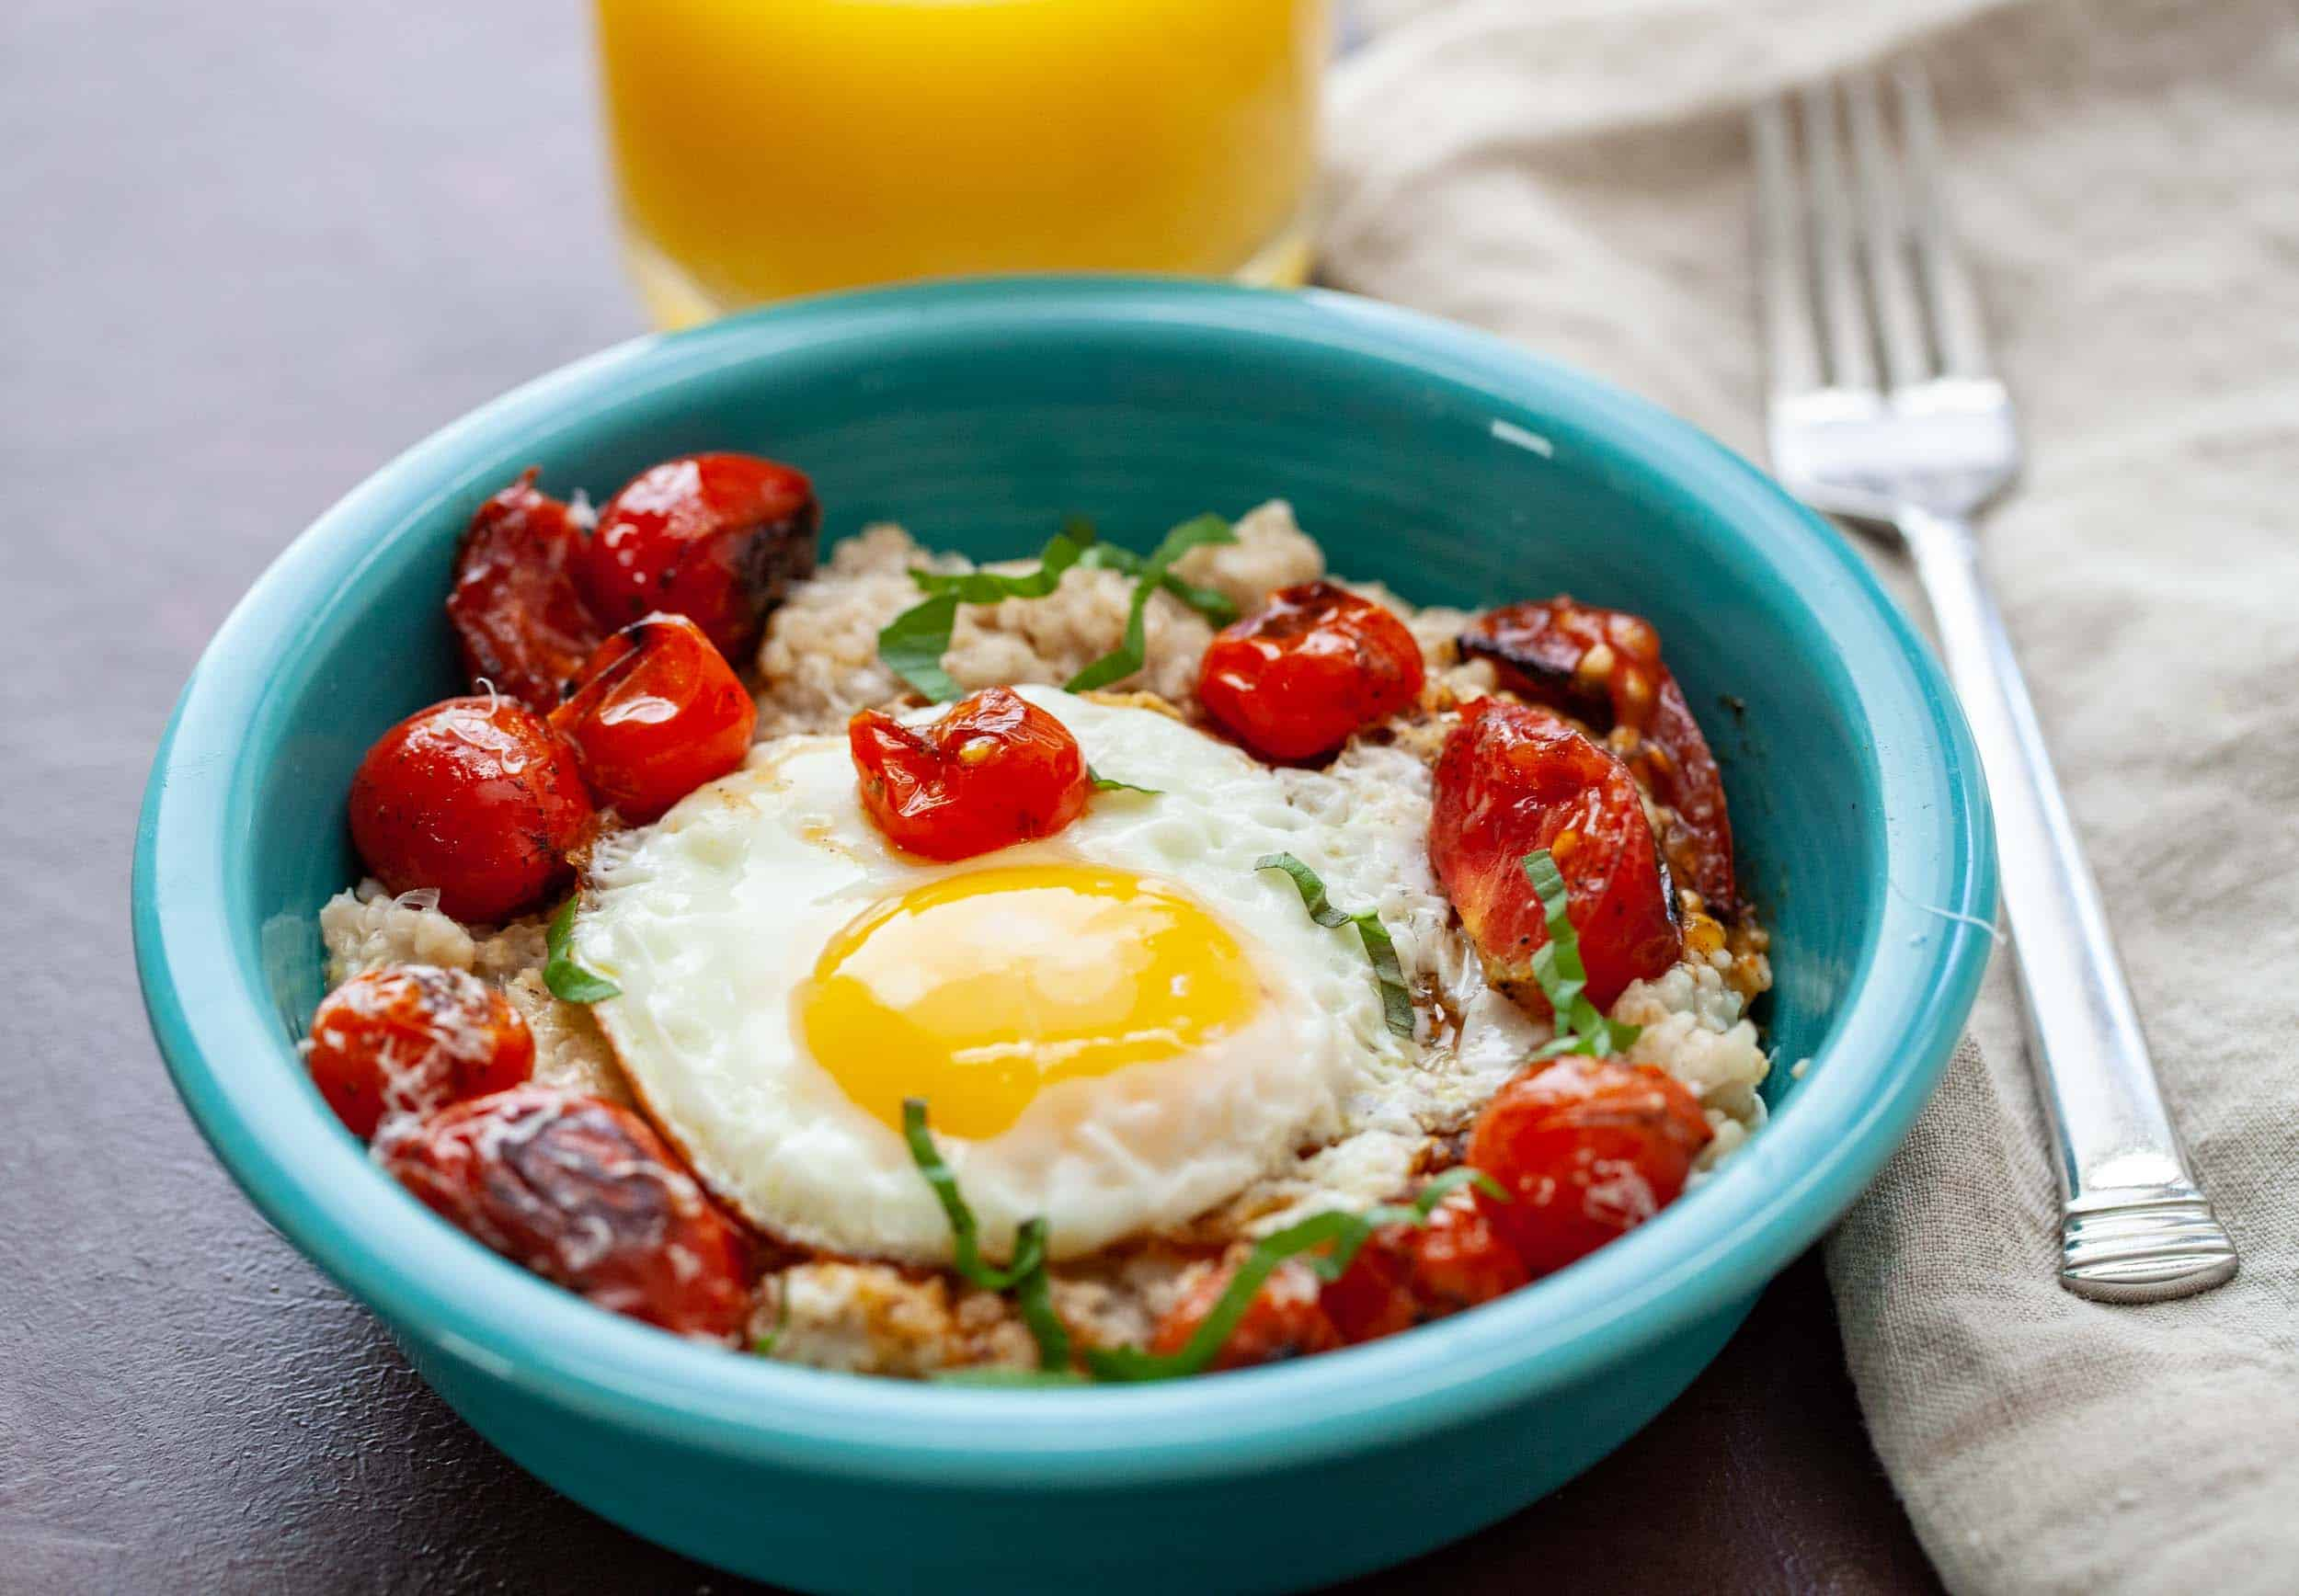 Savory Tomato Oatmeal with Egg